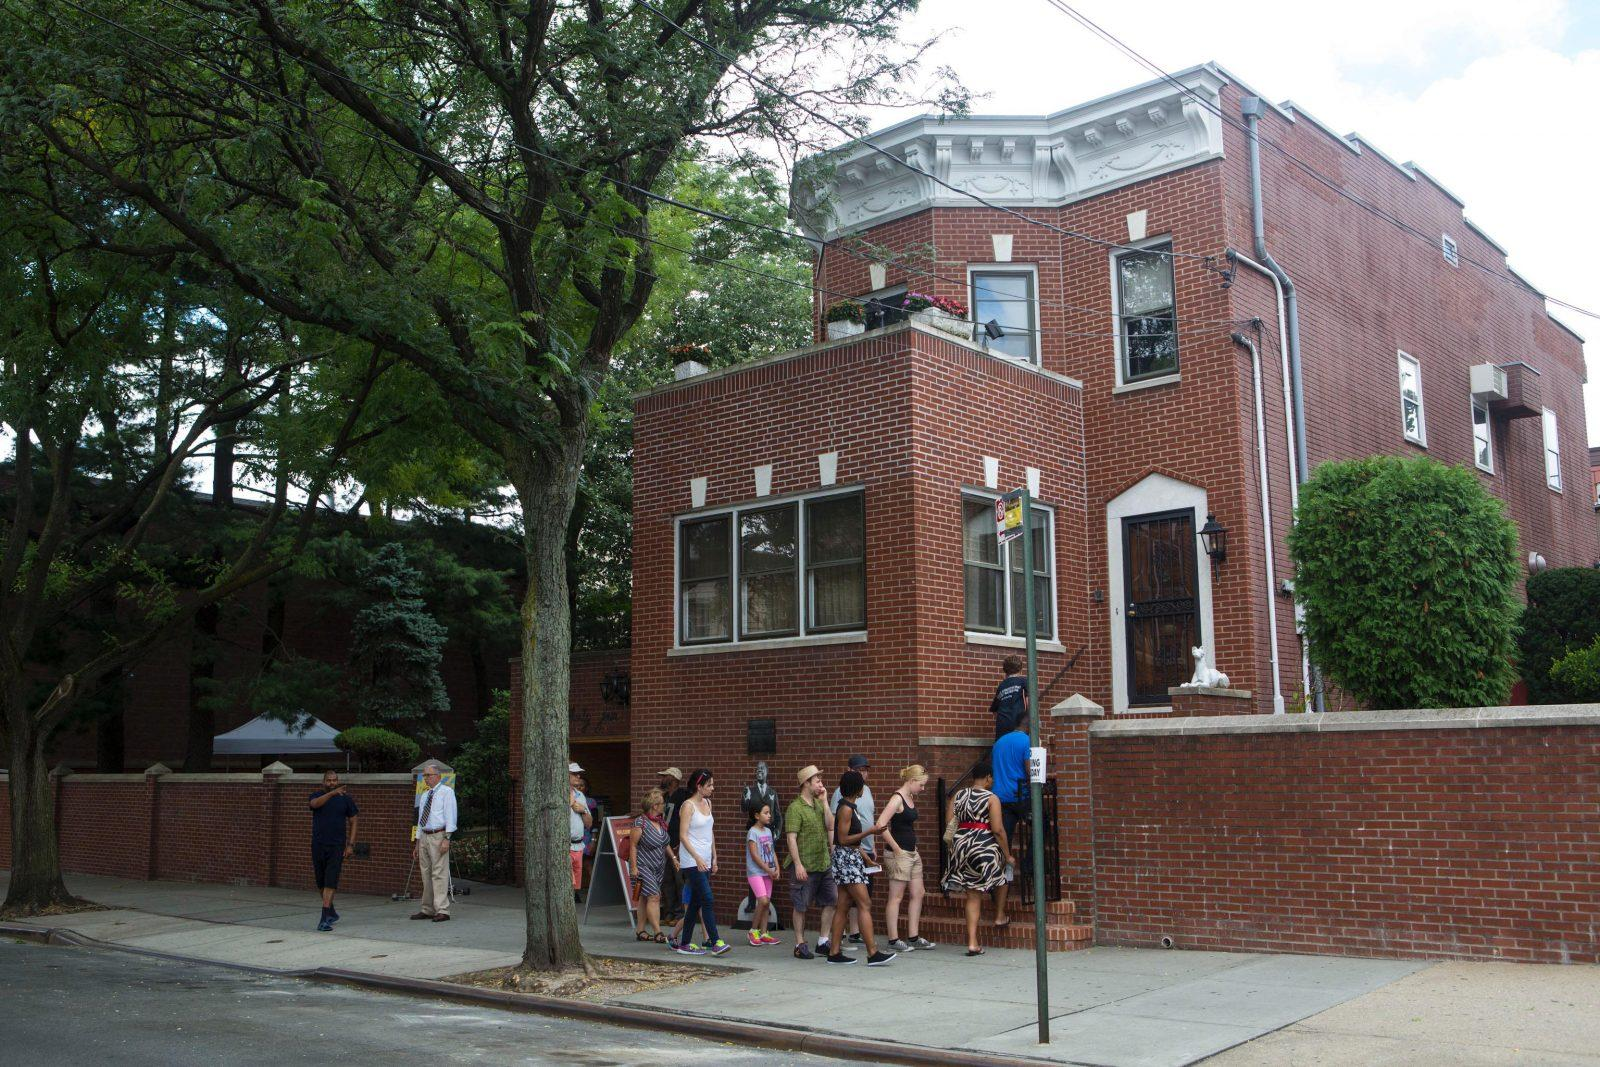 louisarmstronghousemuseum - Louis Armstrong's Queens Home Now a Shrine to His Genius